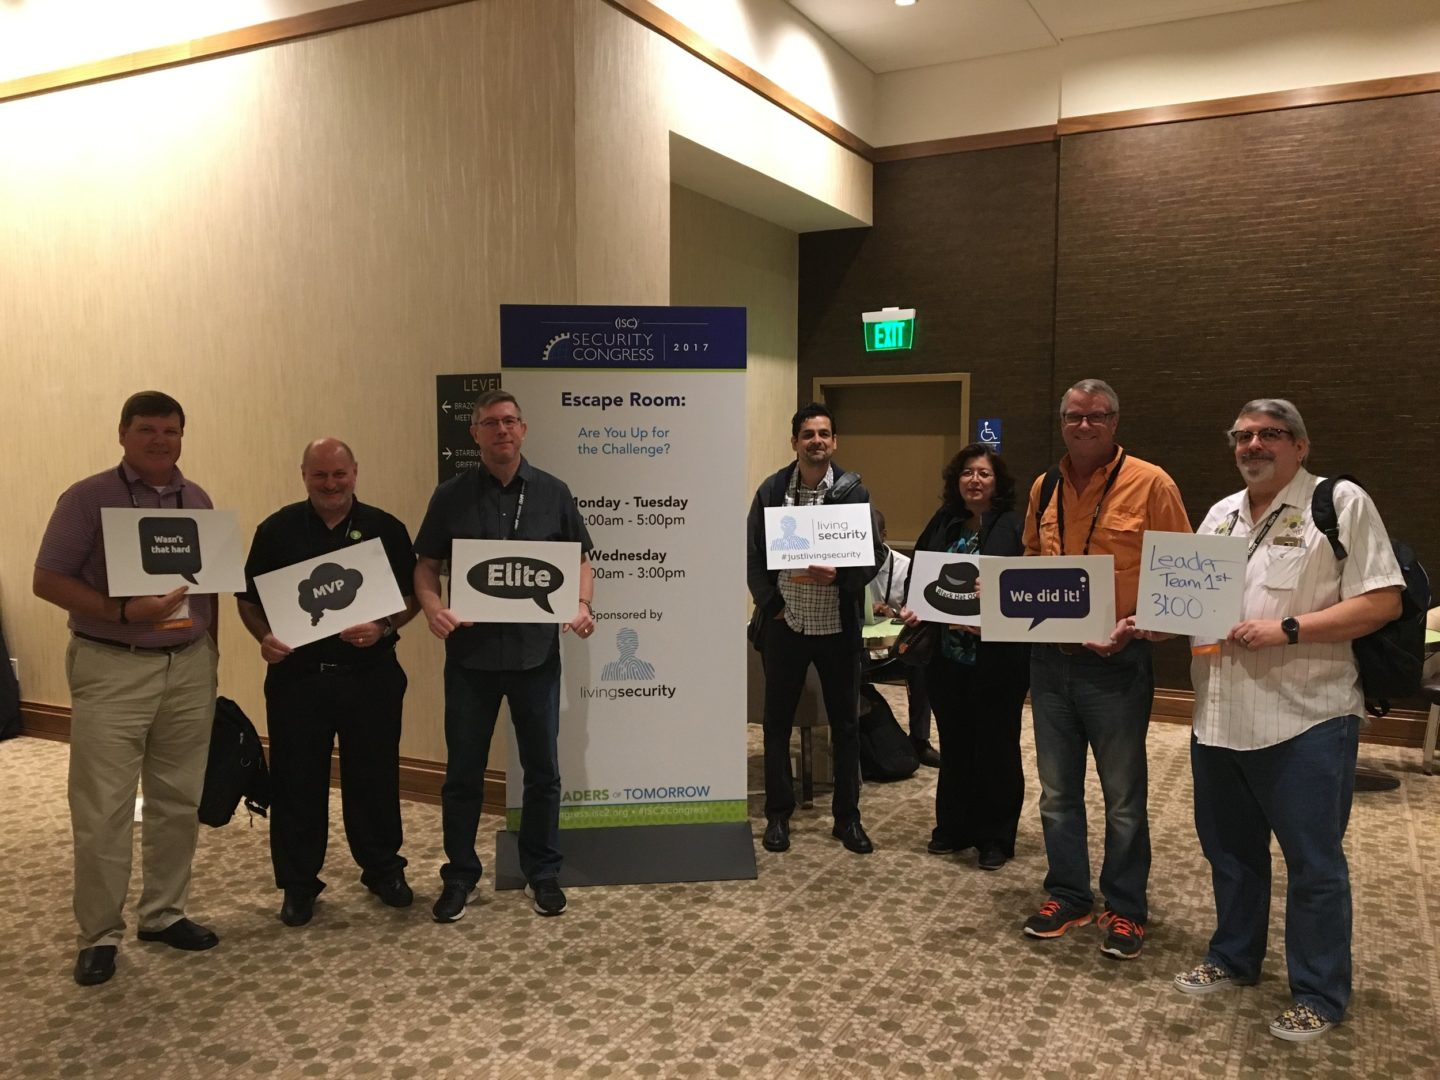 Living Security hosts The Security Escape Room at the (ISC)² Security Congress_13